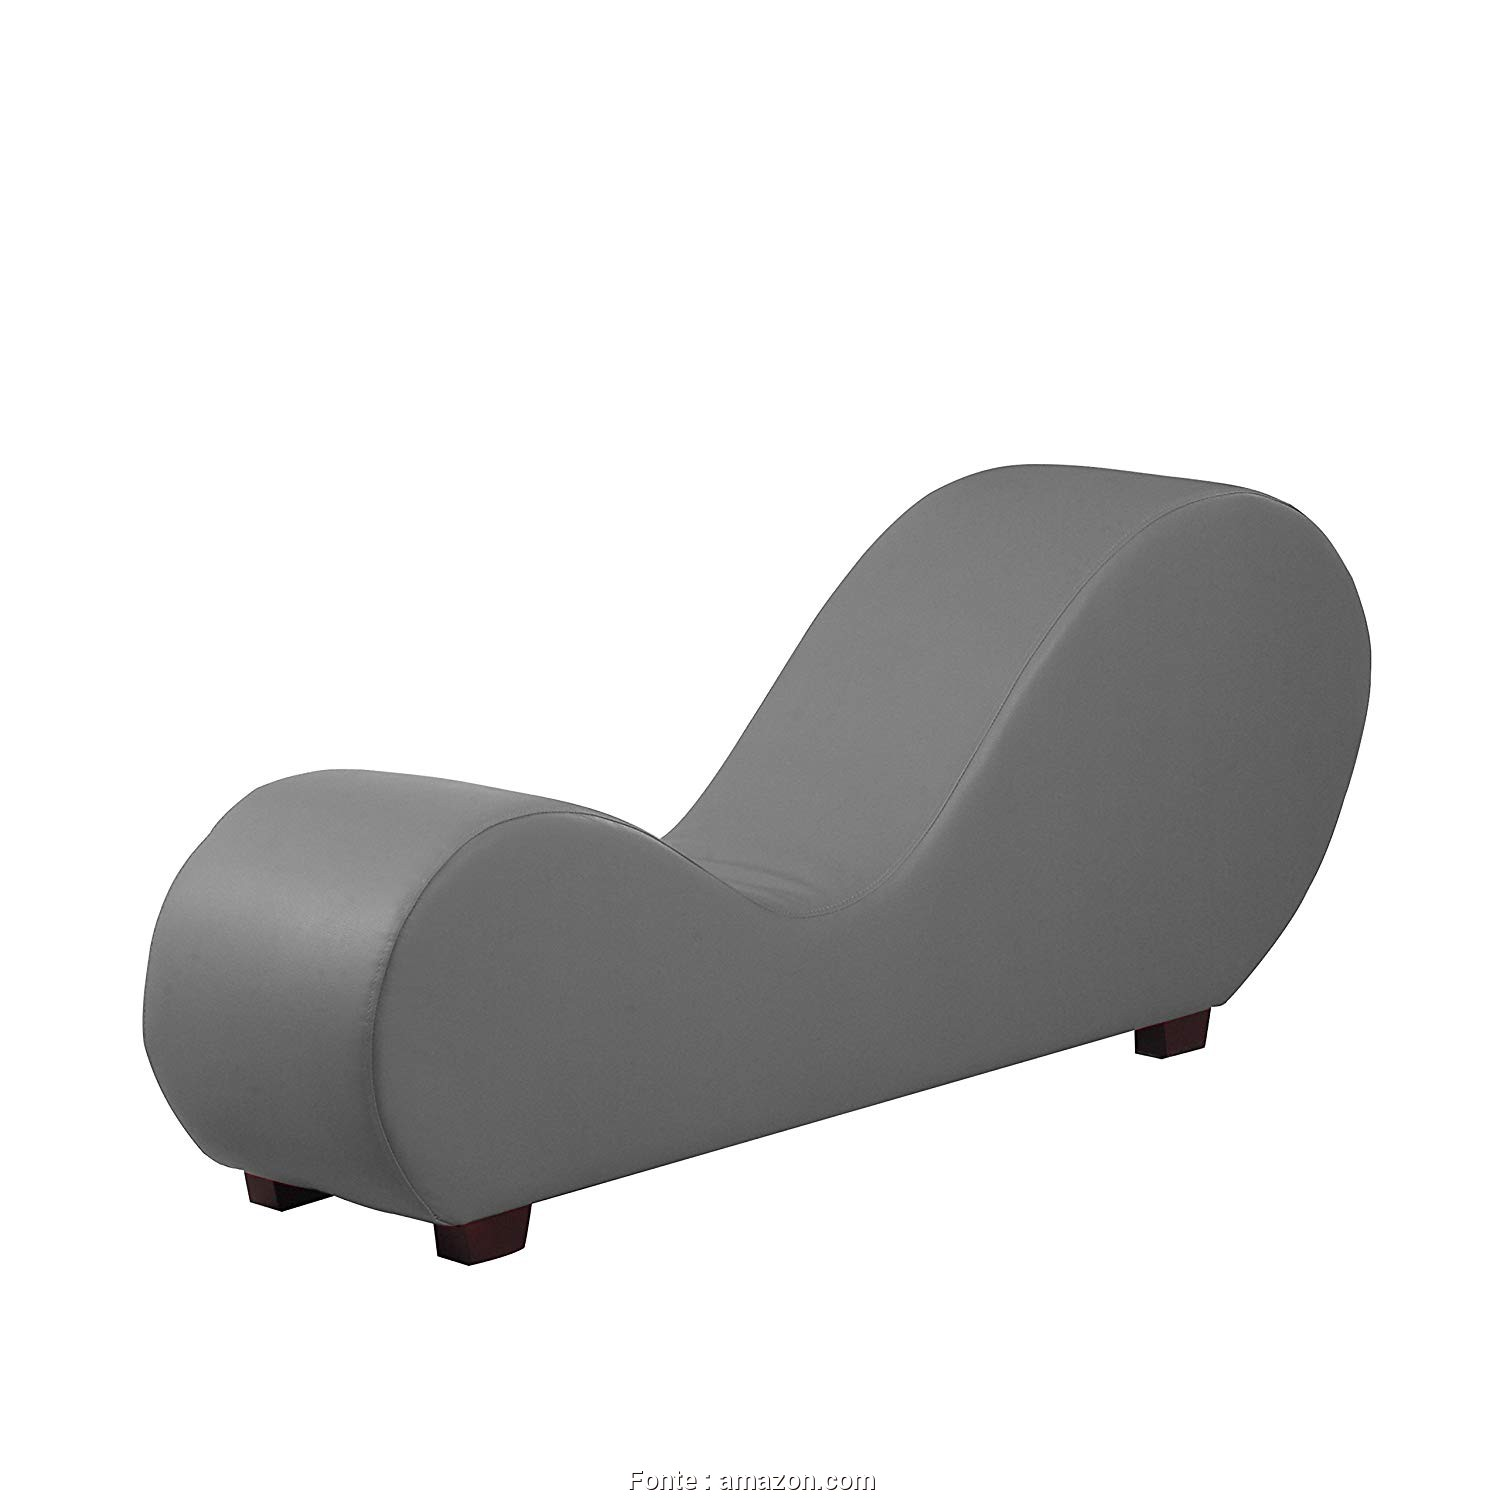 Divano Chaise Longue Relax, Loveable Amazon.Com: Divano Roma Furniture Modern Bonded Leather Chaise Lounge Yoga Chair, Stretching, Relaxation (Grey): Kitchen & Dining